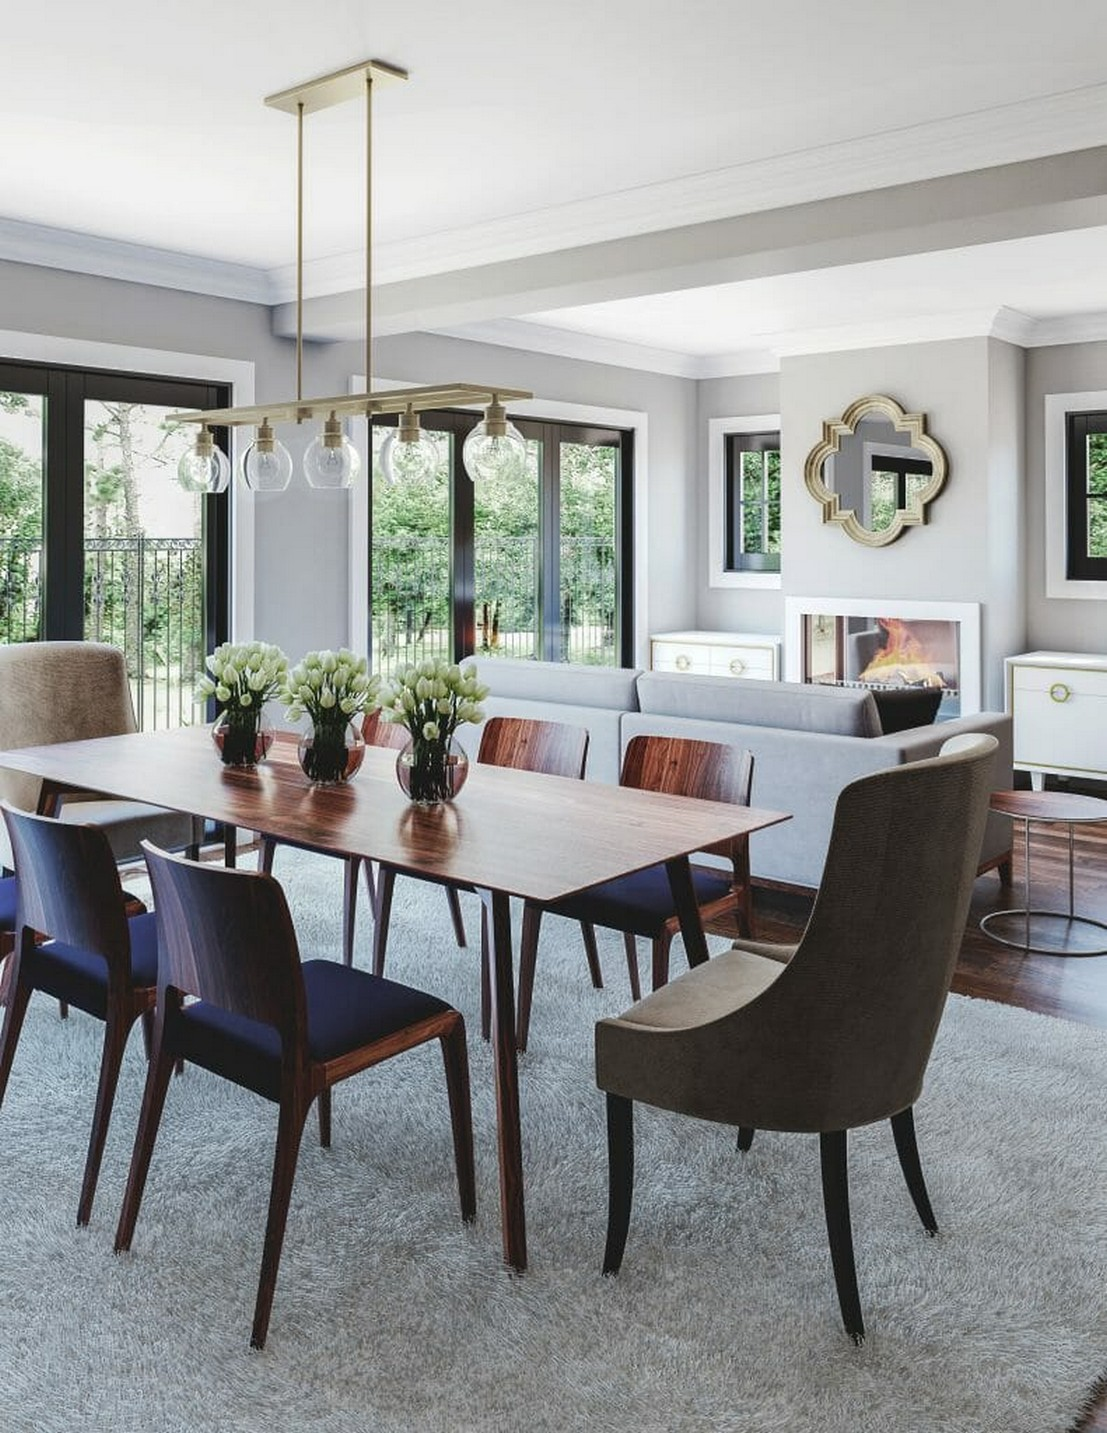 Great Renovation Inspiration of Living Room - Must See!!